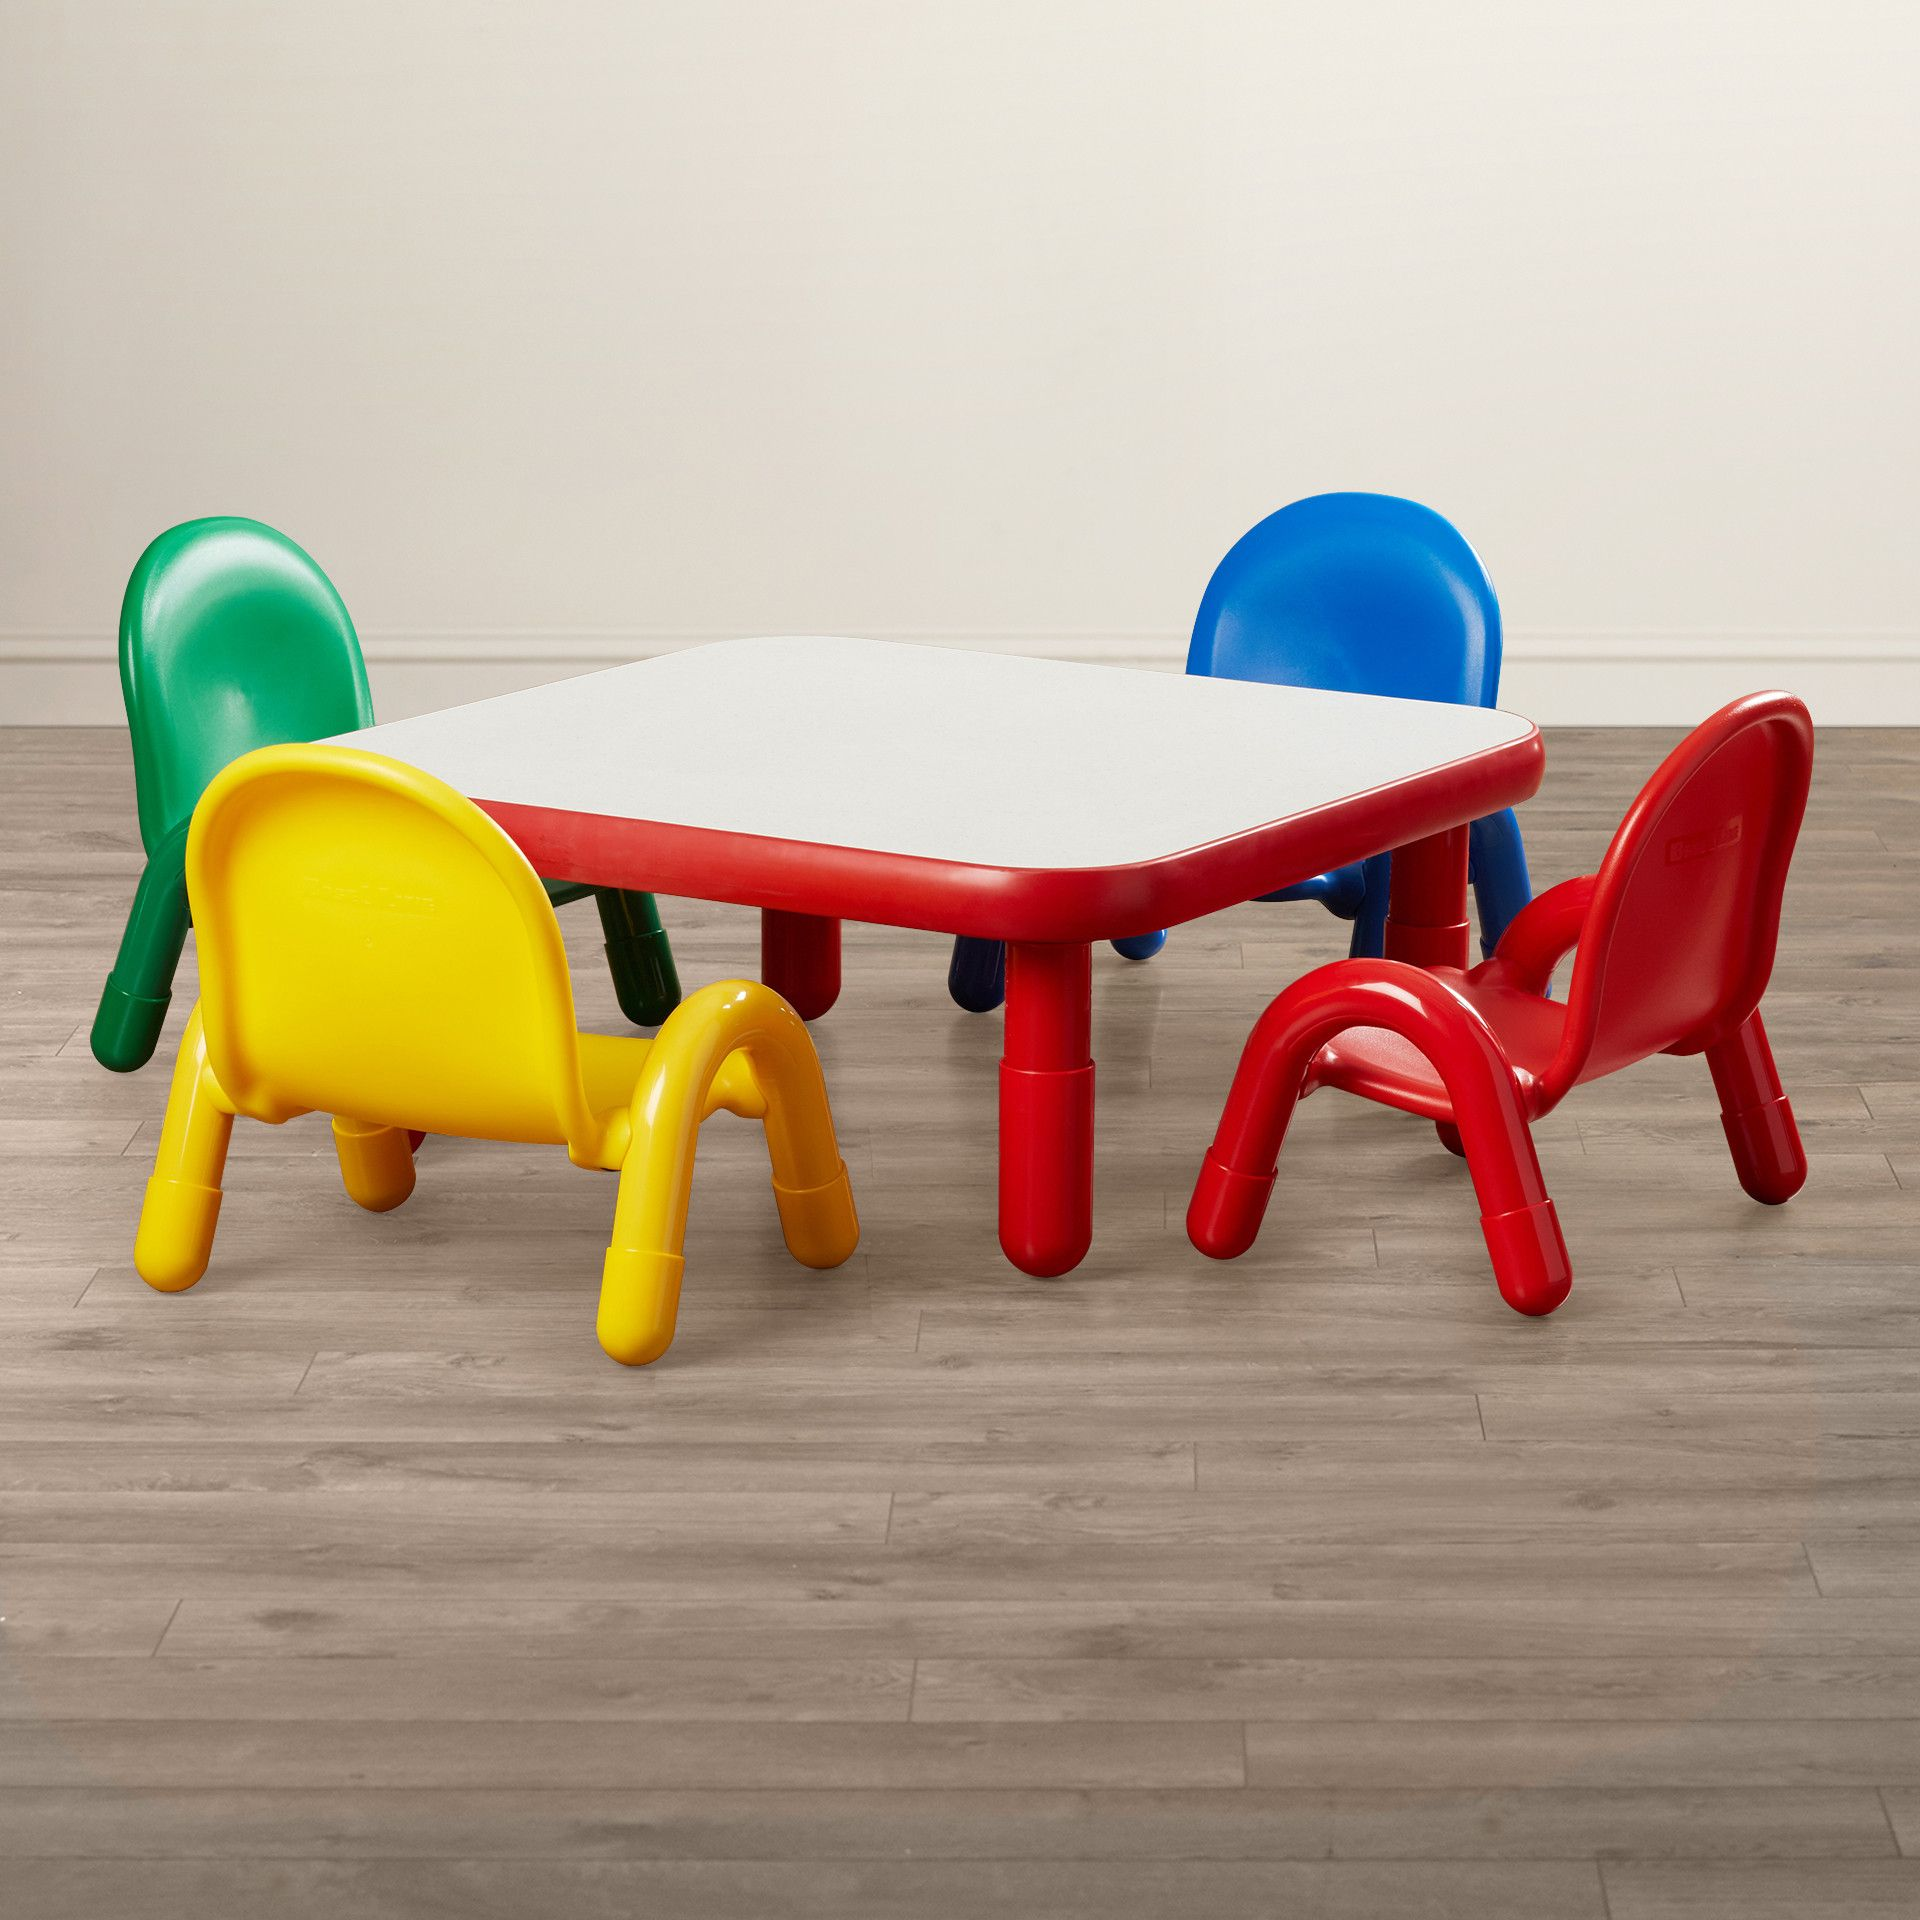 Terrific Baseline Toddler Table And Chair Set Baby Toddler Table Home Interior And Landscaping Oversignezvosmurscom